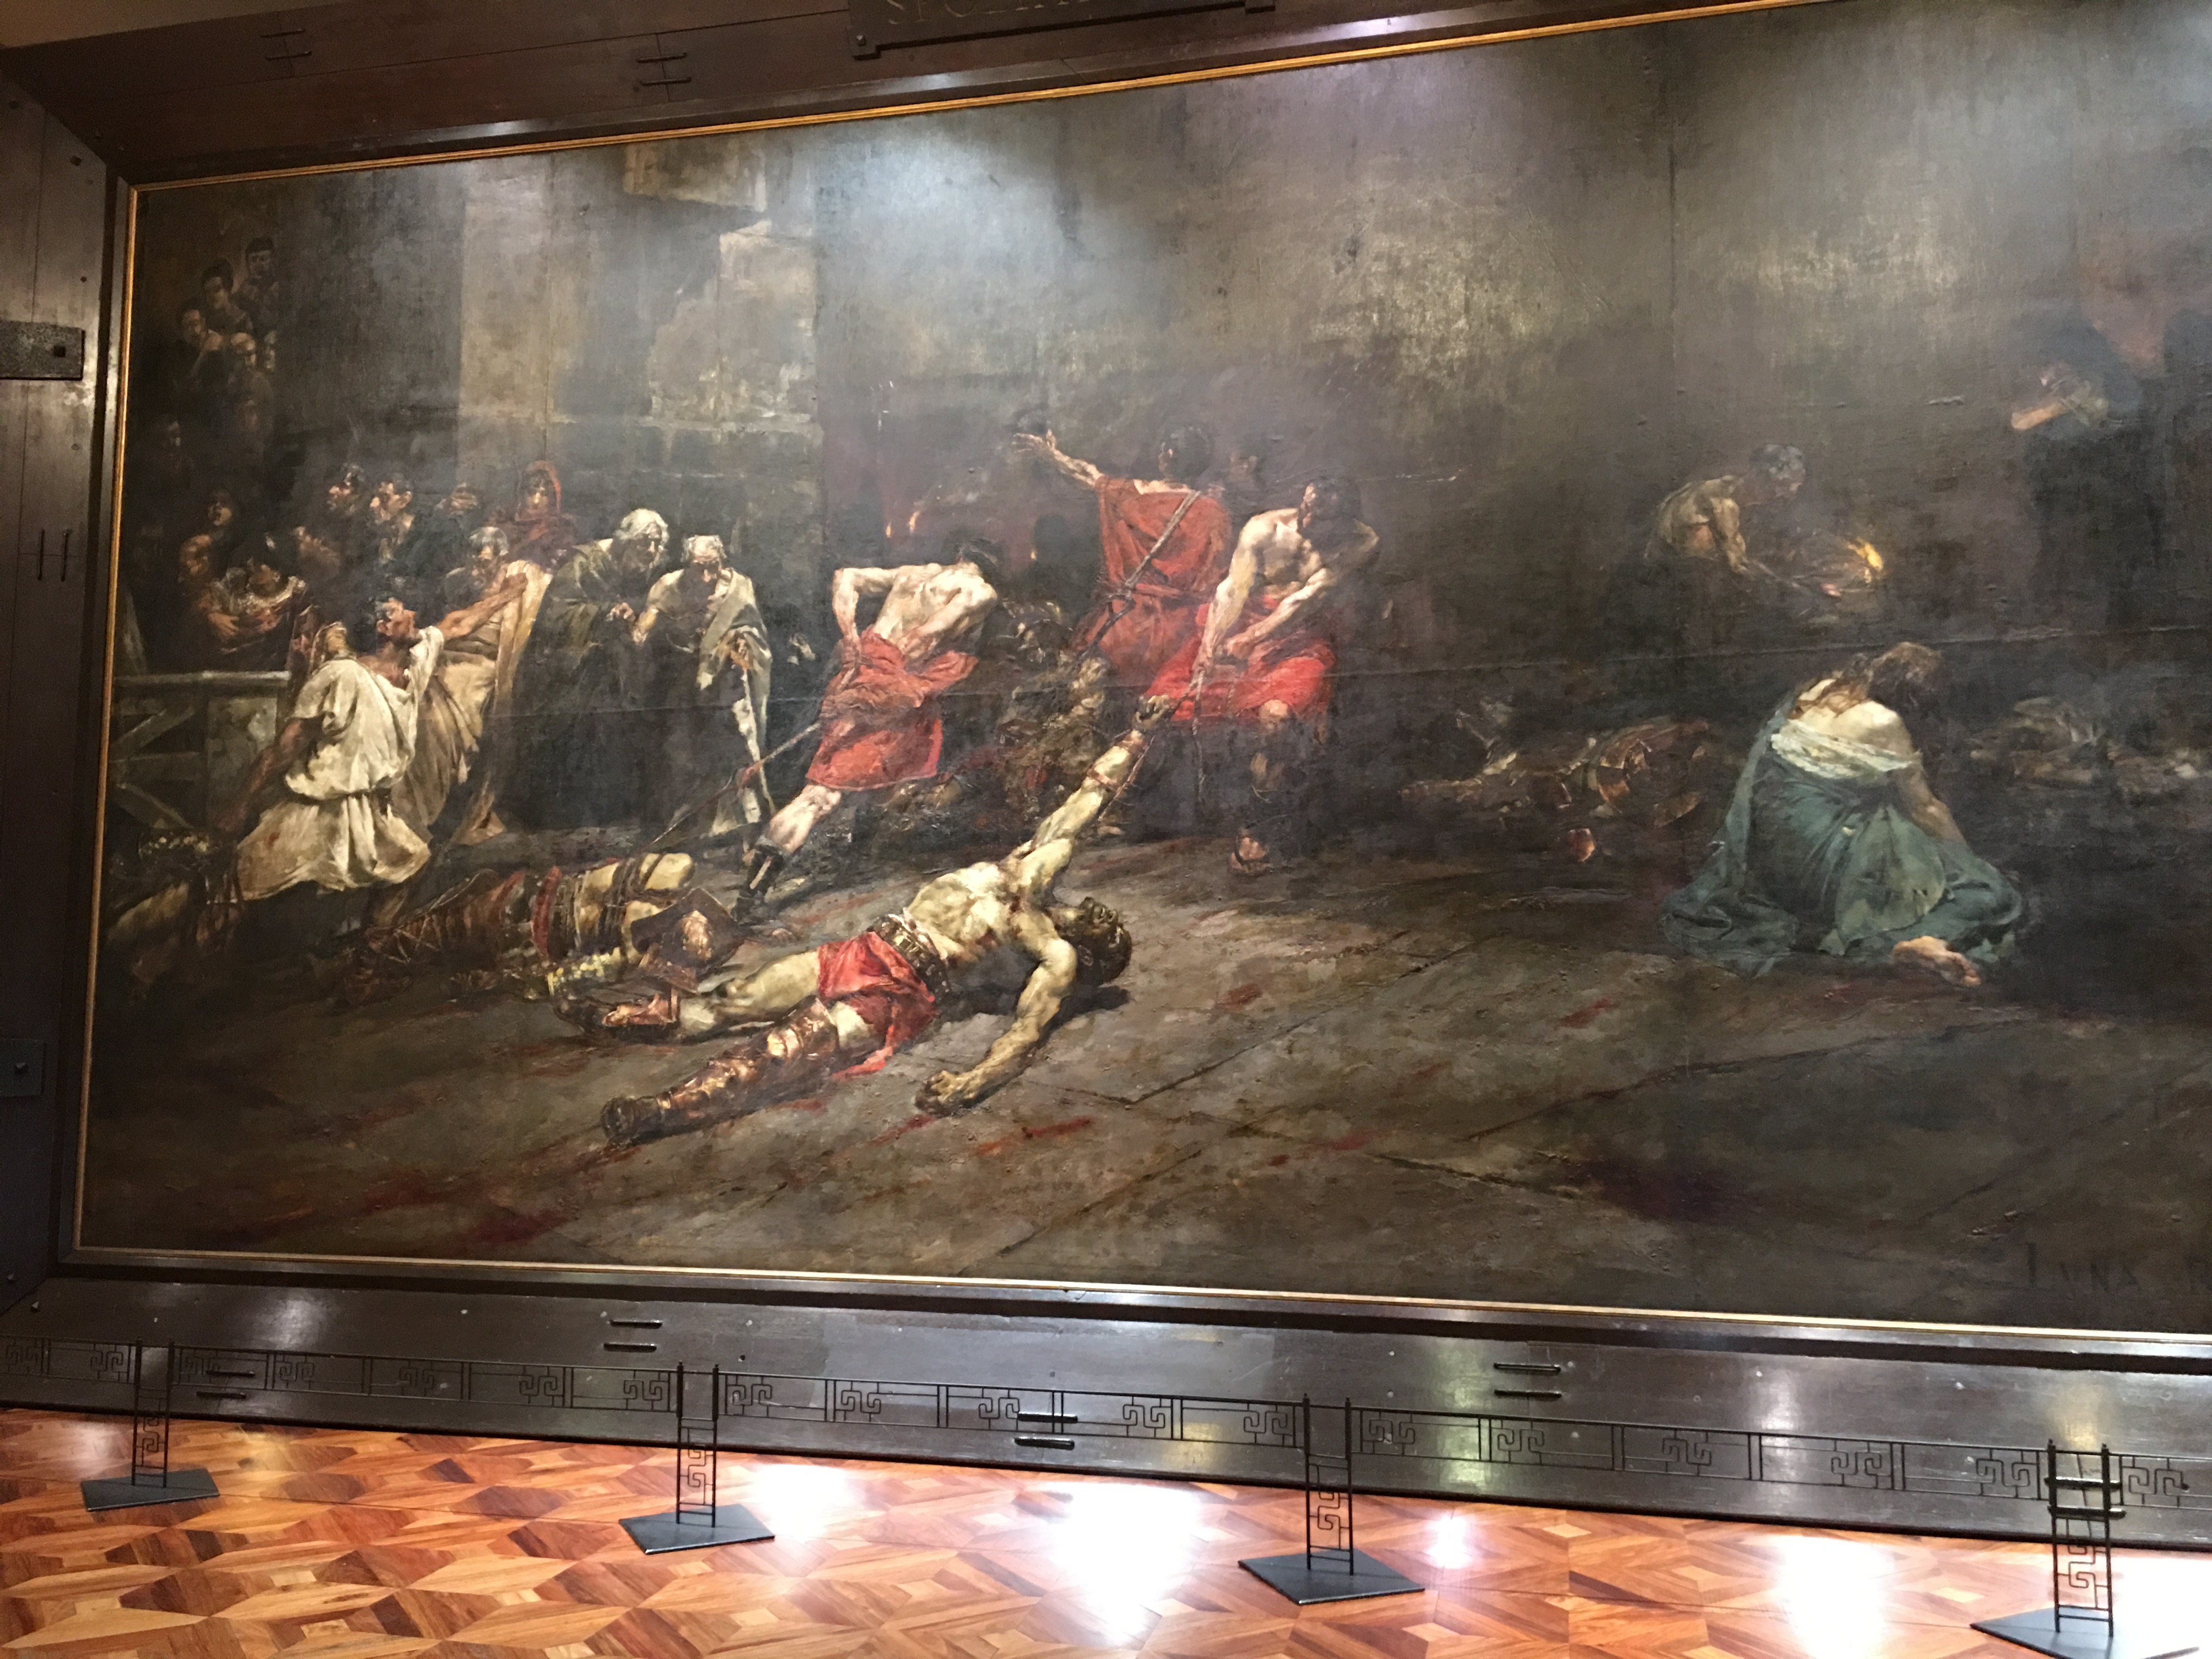 Spoliarium painting by Juan Luna - photo from Wikipedia